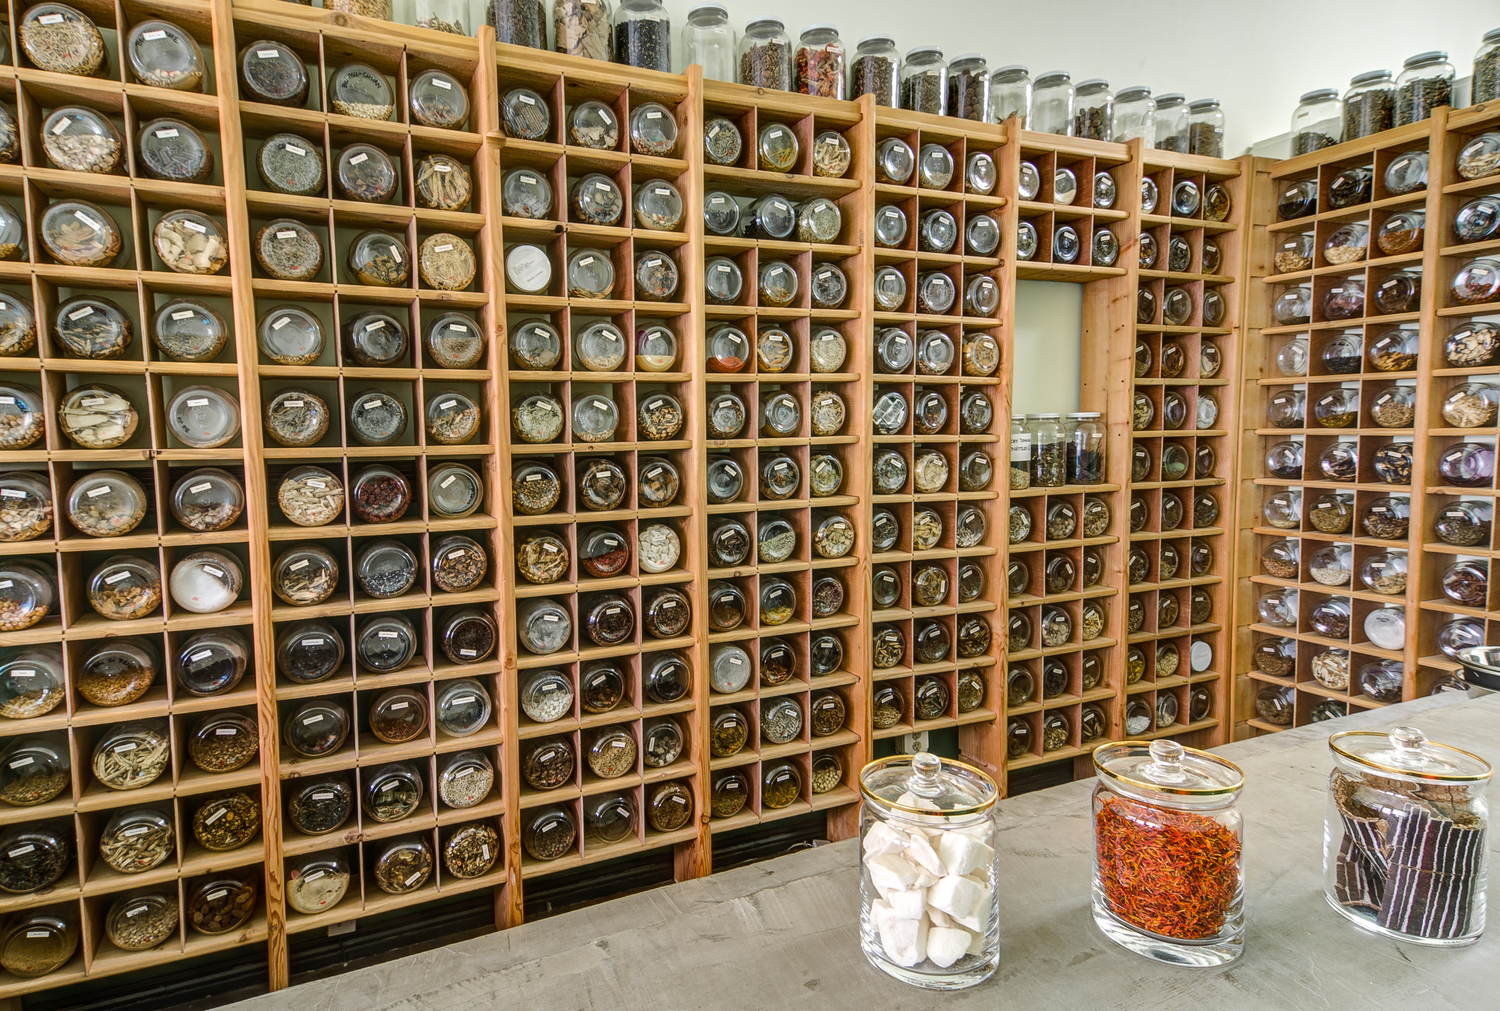 Chinese herbal products - A Modern Take On An Ancient Medicine